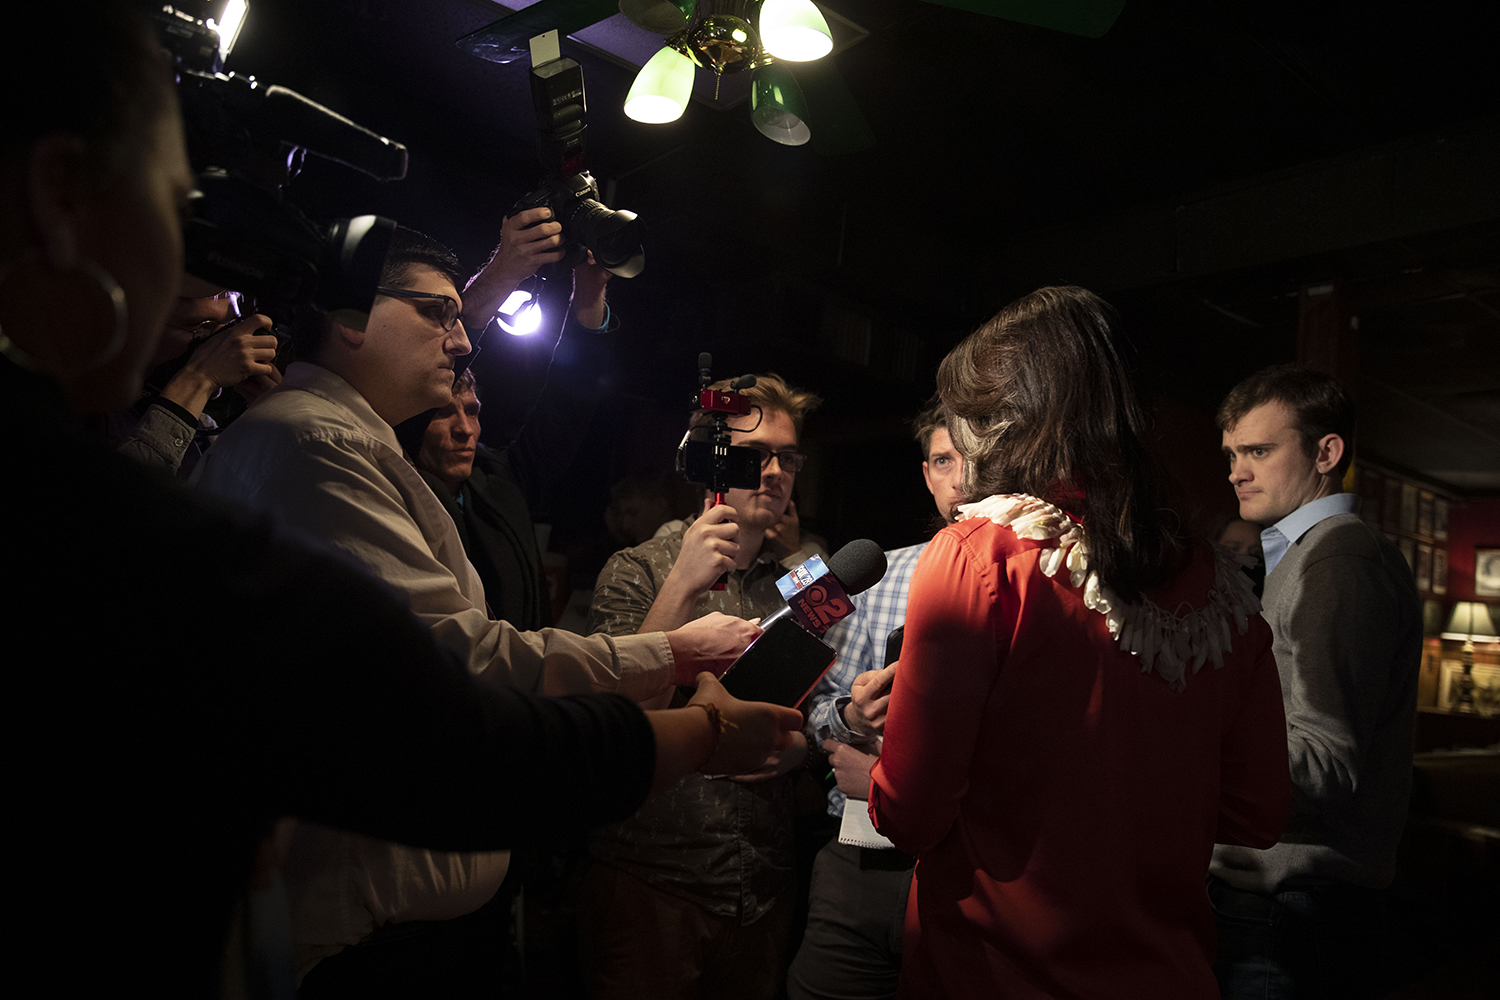 U.S.+Rep.+Tulsi+Gabbard%2C+D-Hawaii%2C+speaks+with+the+media+during+an+event+at+the+The+Mill+on+Thursday%2C+February+21%2C+2019.+Rep.+Gabbard+visited+Iowa+City+on+Thursday+after+having+cancelled+stops+in+the+area+last+week+due+to+inclement+weather.